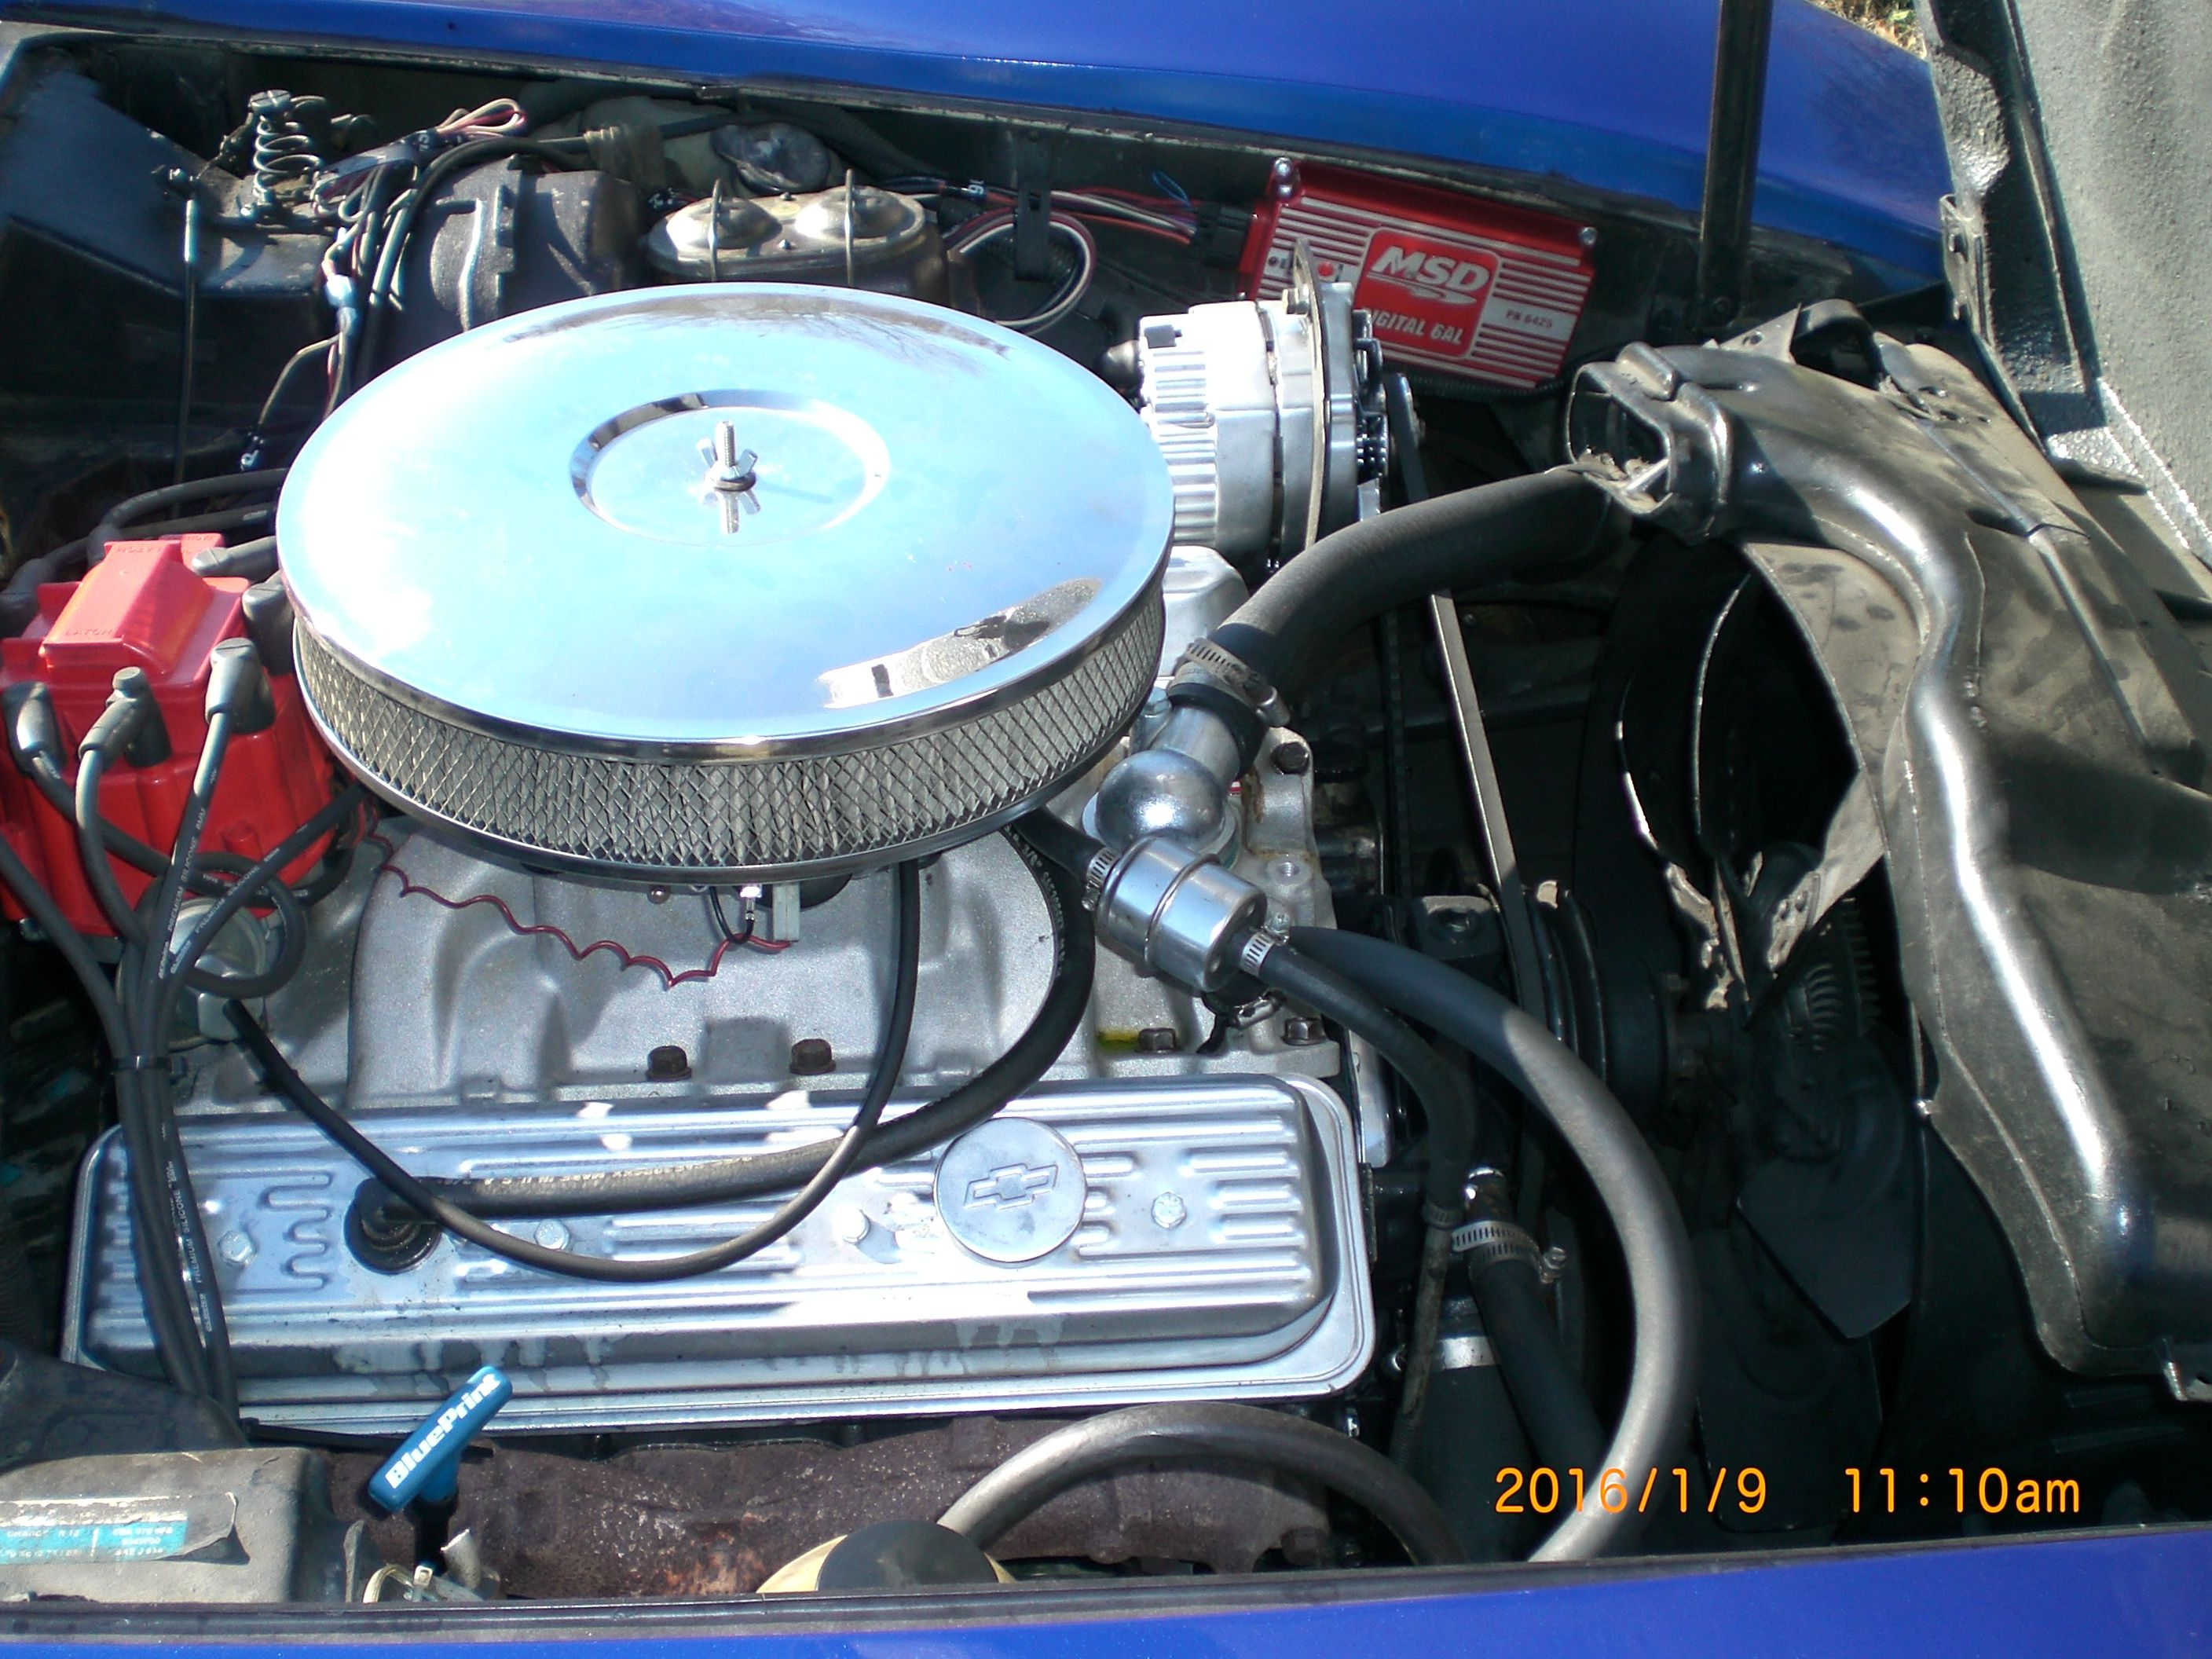 Blueprint engines customer stan gilbreath installed a bp3832ct1 blueprint engines customer stan gilbreath installed a bp3832ct1 in his 1956 bel air blueprintengines bp3832ct1 frameoffrestoration belair pinterest malvernweather Gallery